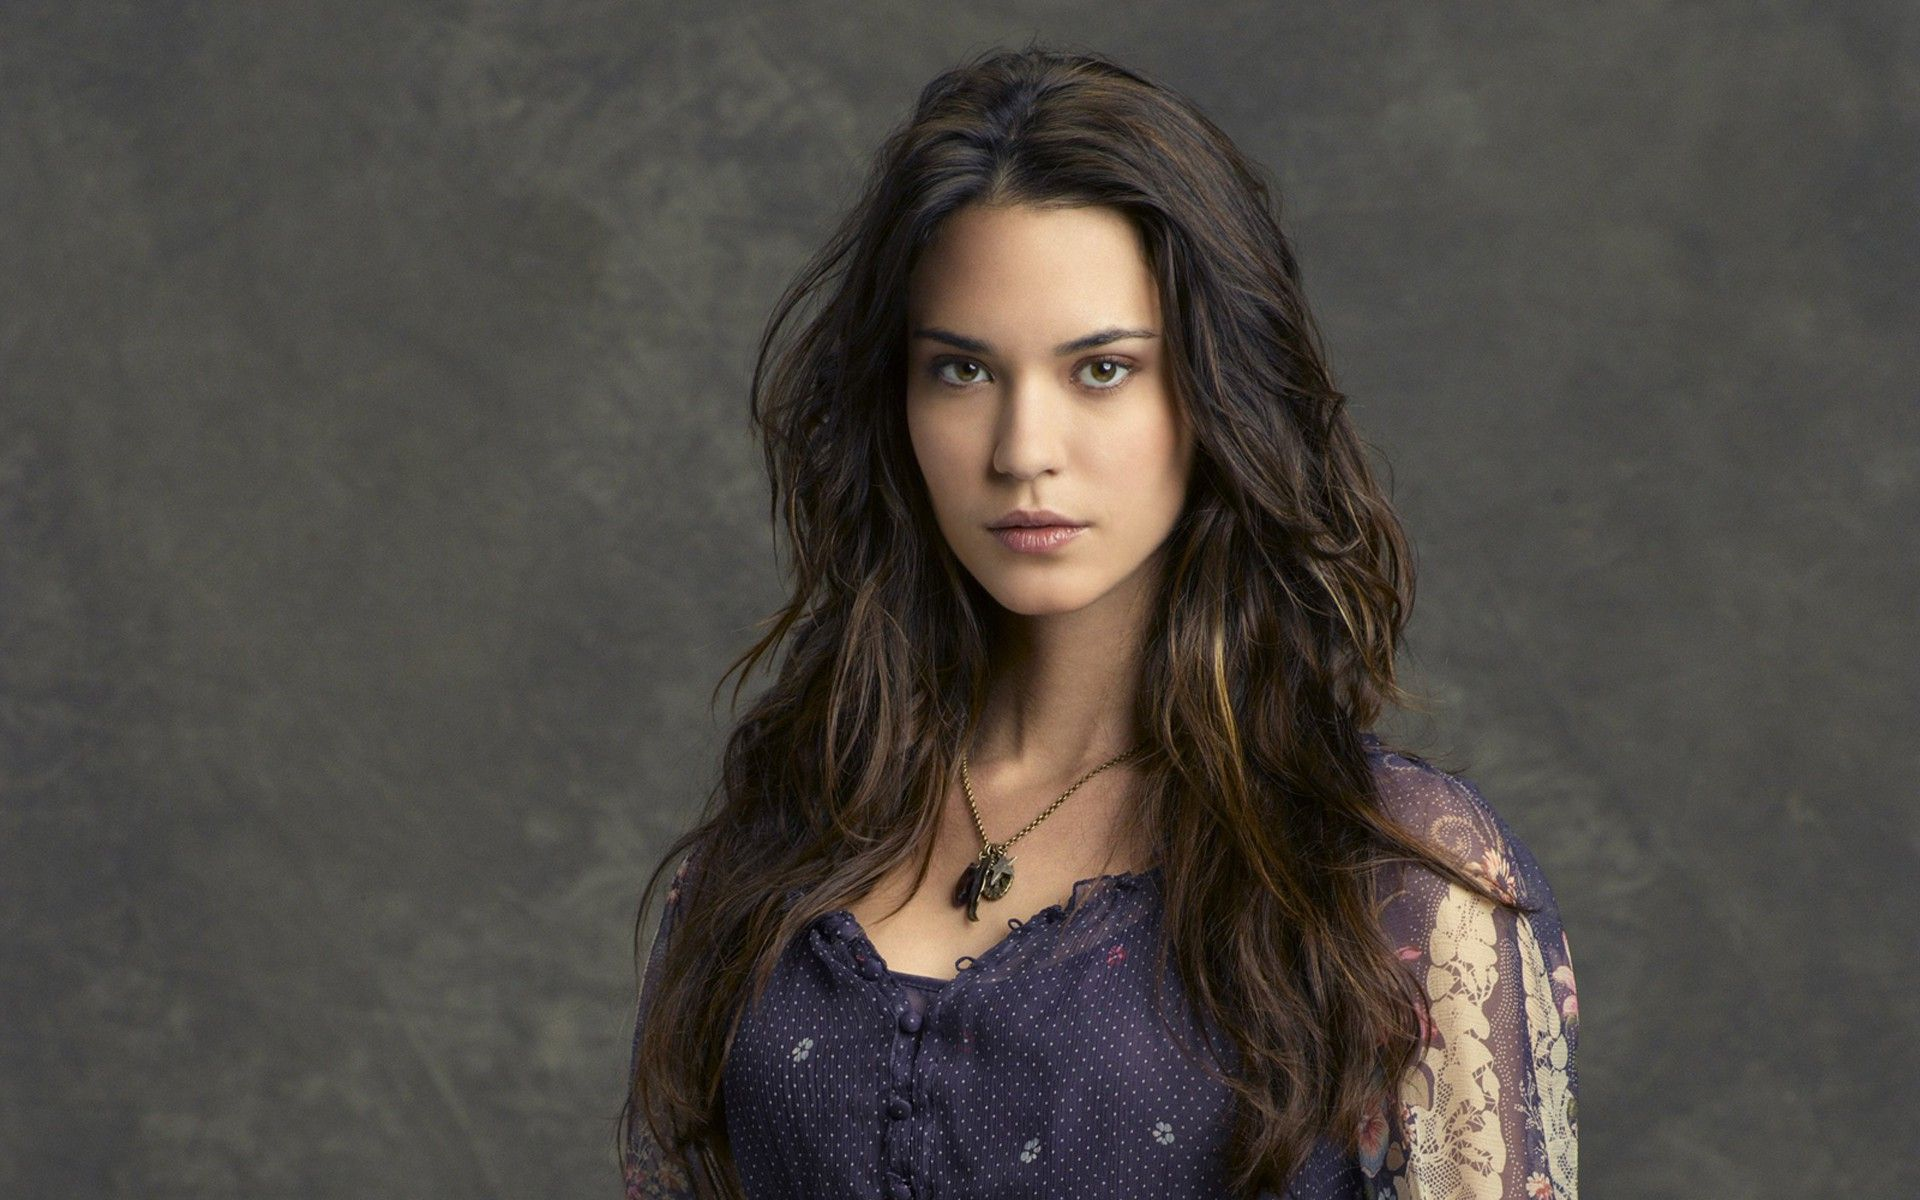 1920x1200 - Odette Annable Wallpapers 15